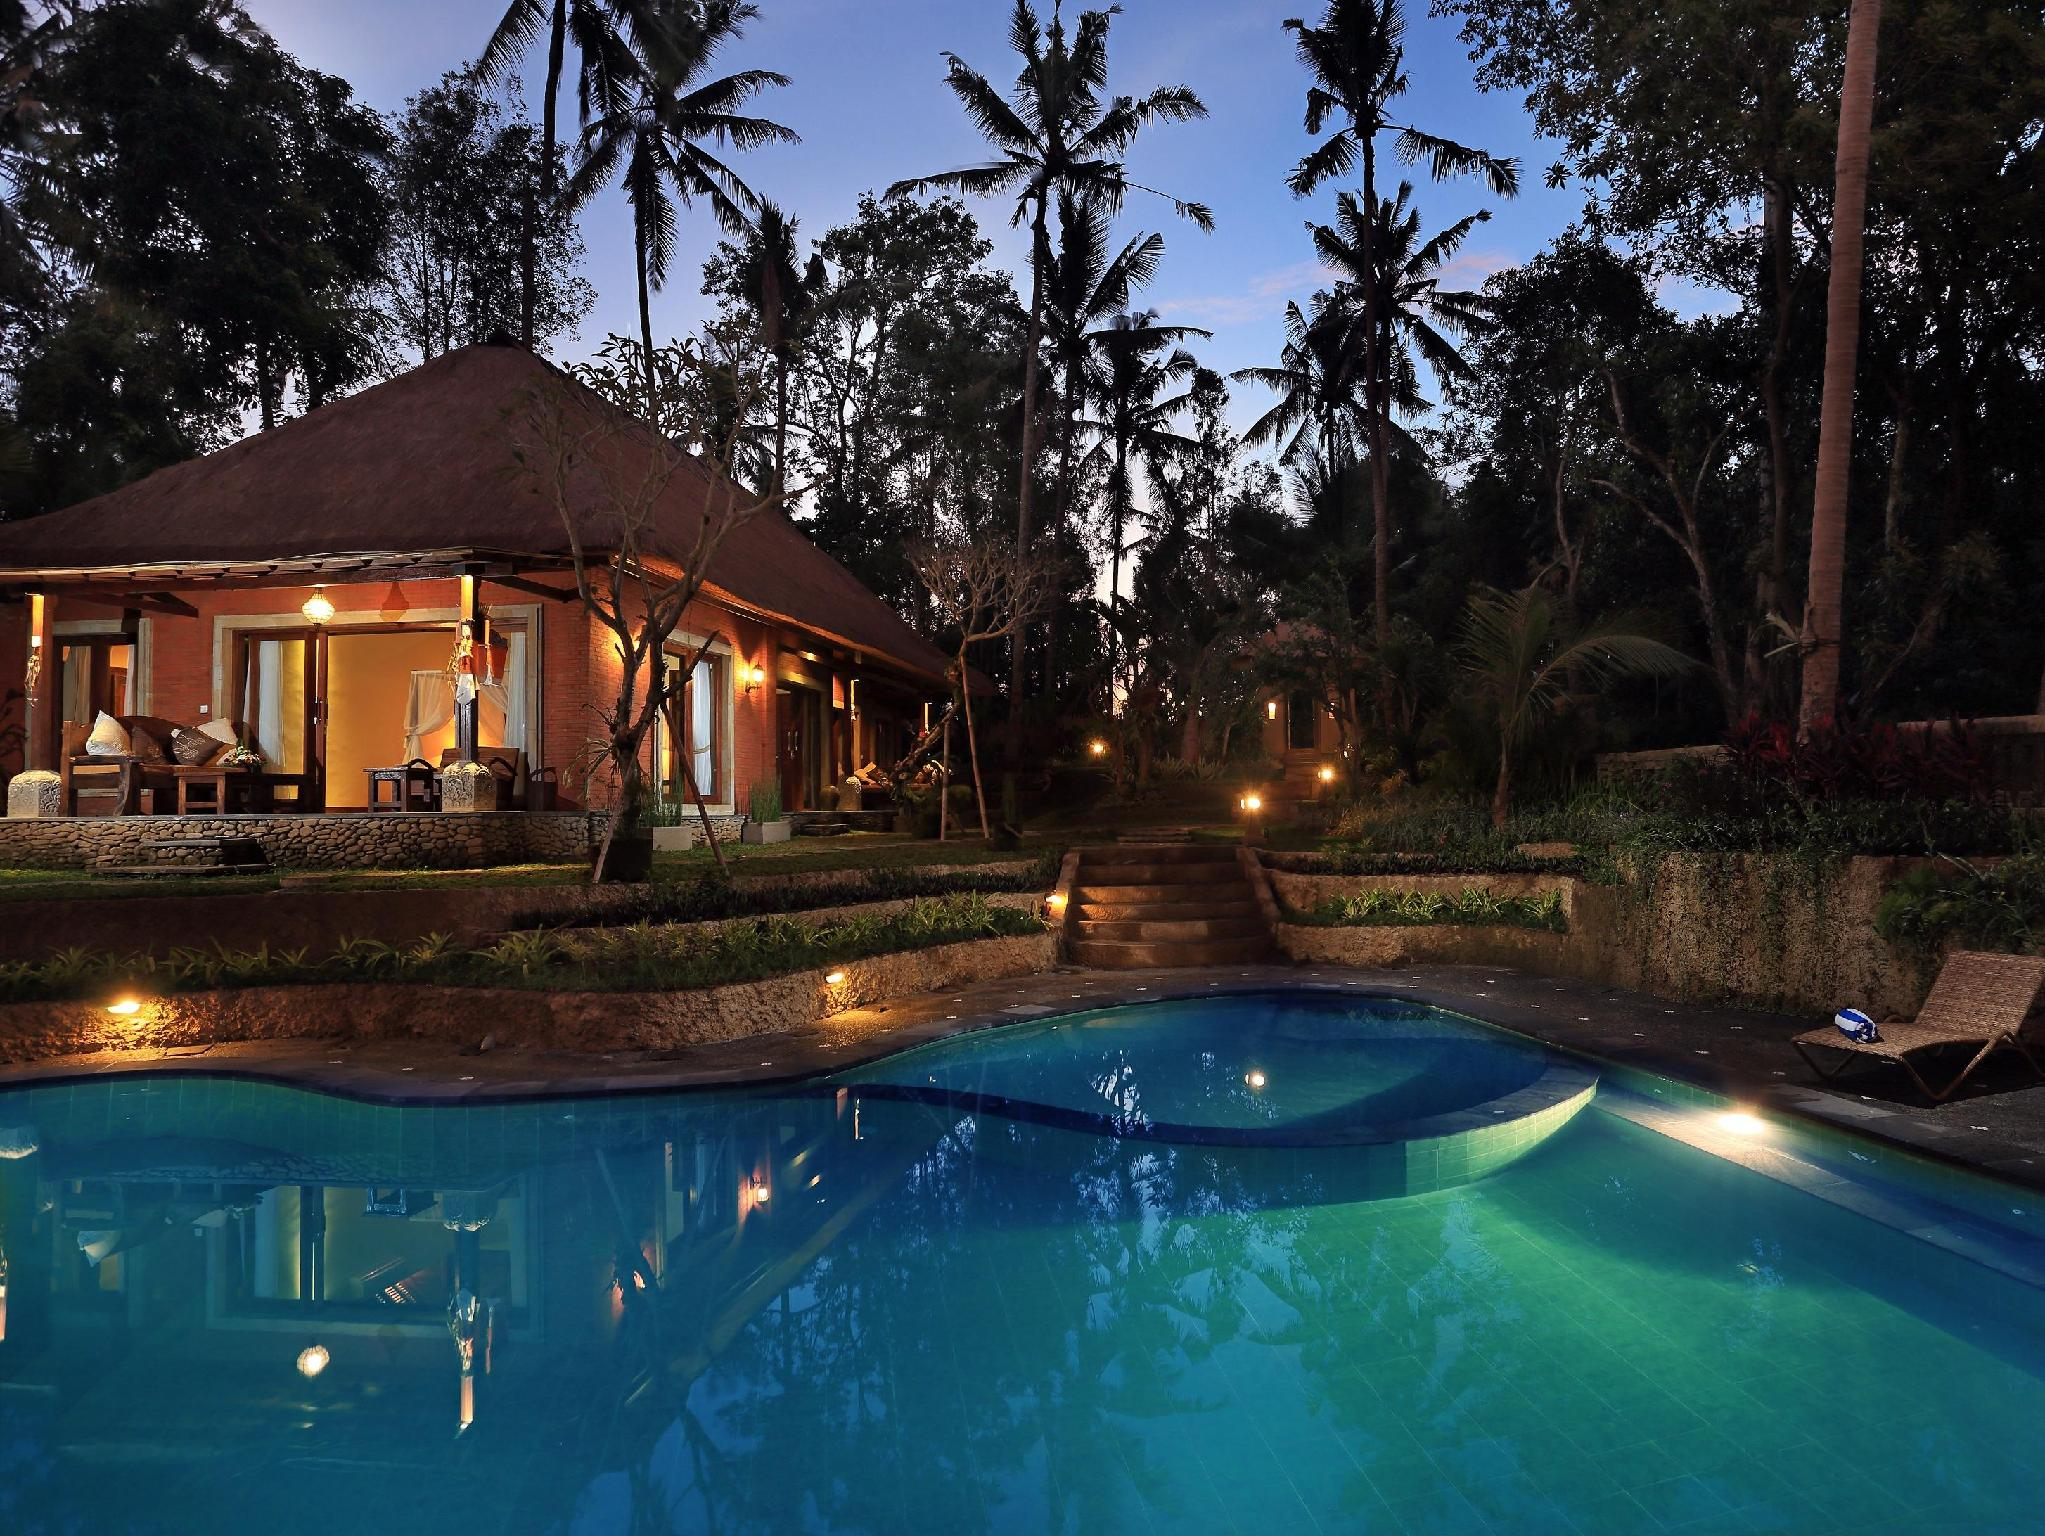 Bunut garden luxury private pool villa ubud bali for Garden pool villa ubud